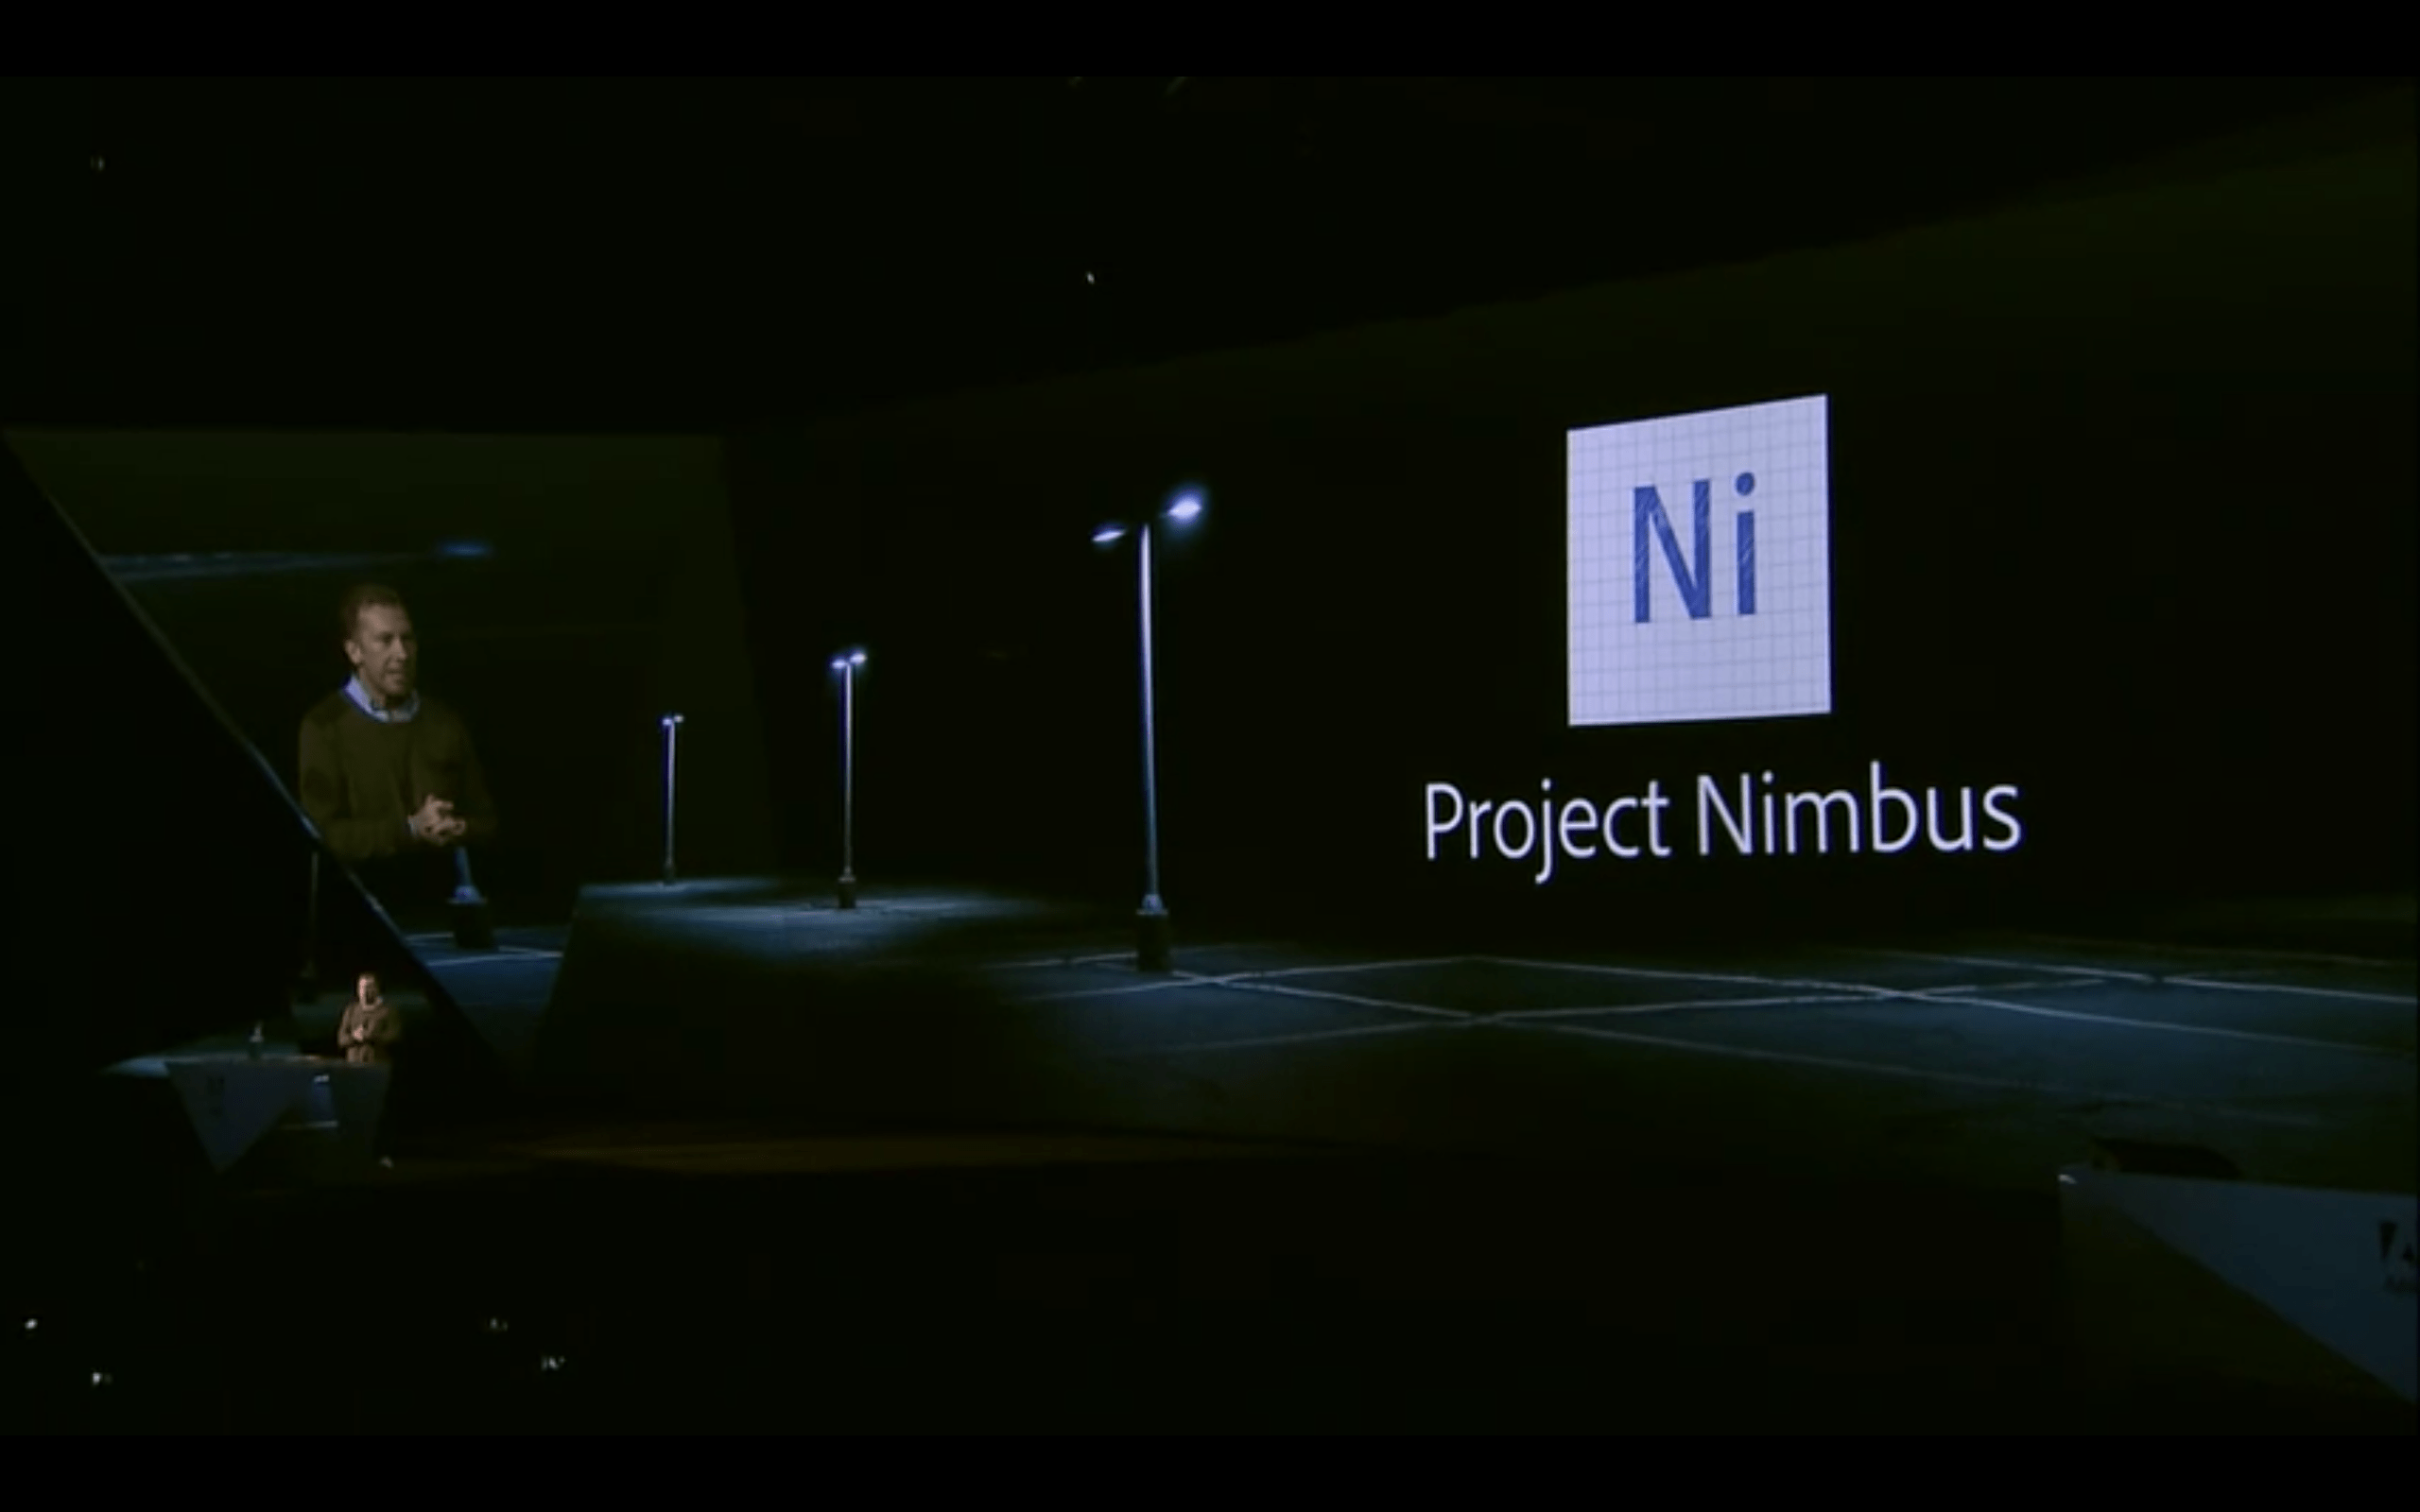 Brian O'Neil Hughes, Group Product Manager at Adobe, announces Project Nimbus